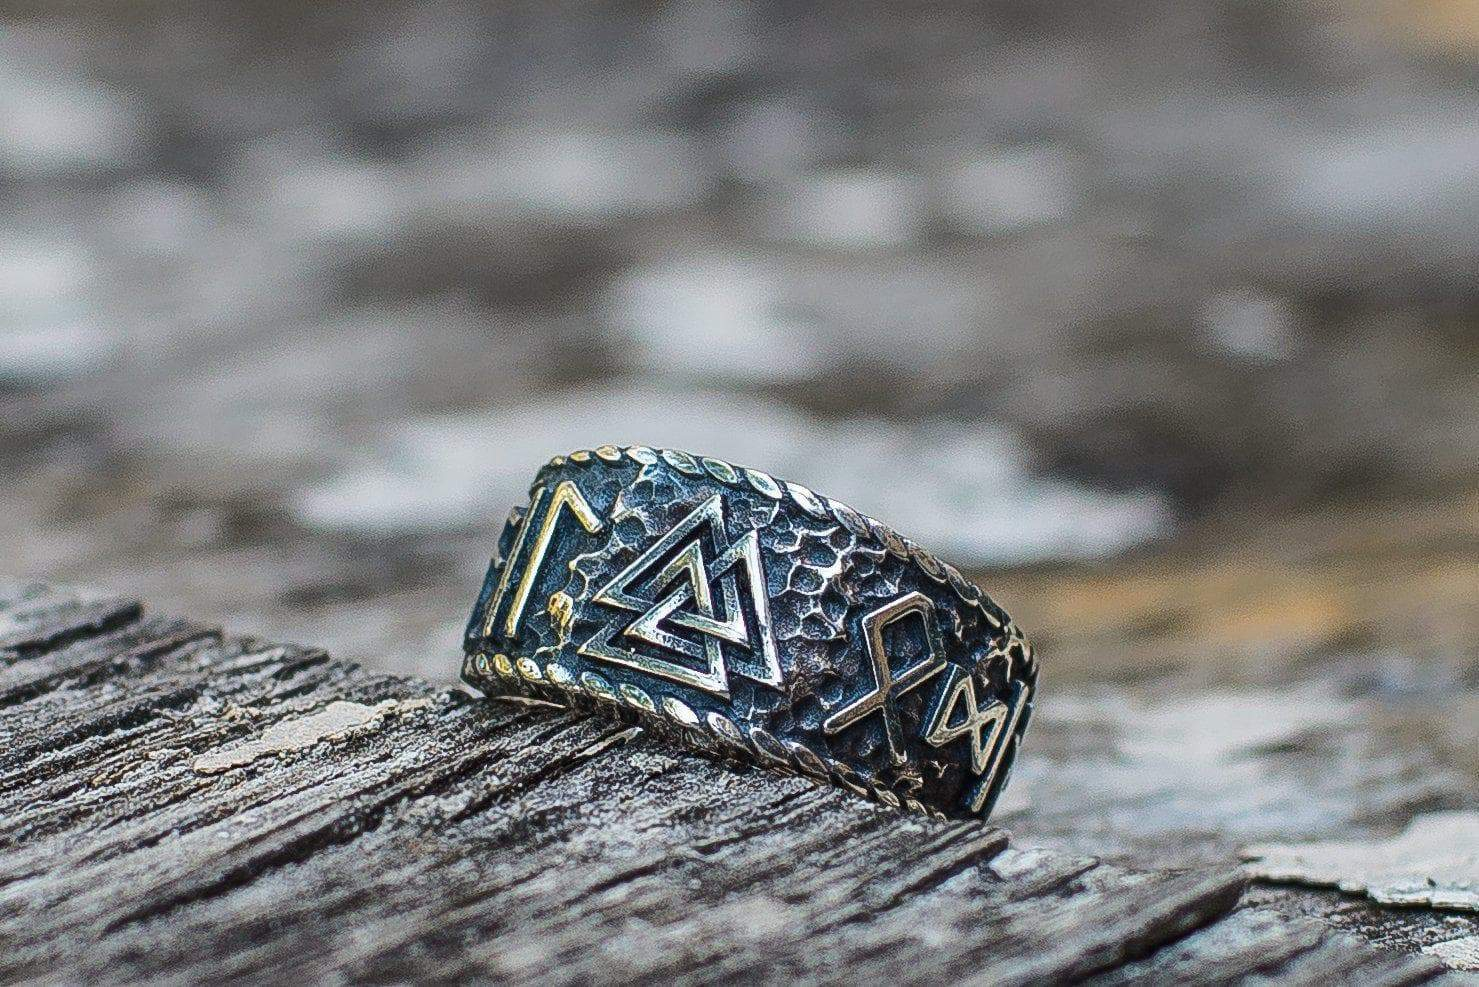 Rings Viking Valknut Pagan Ring with HAIL ODIN Runes Ancient Treasures Ancientreasures Viking Odin Thor Mjolnir Celtic Ancient Egypt Norse Norse Mythology